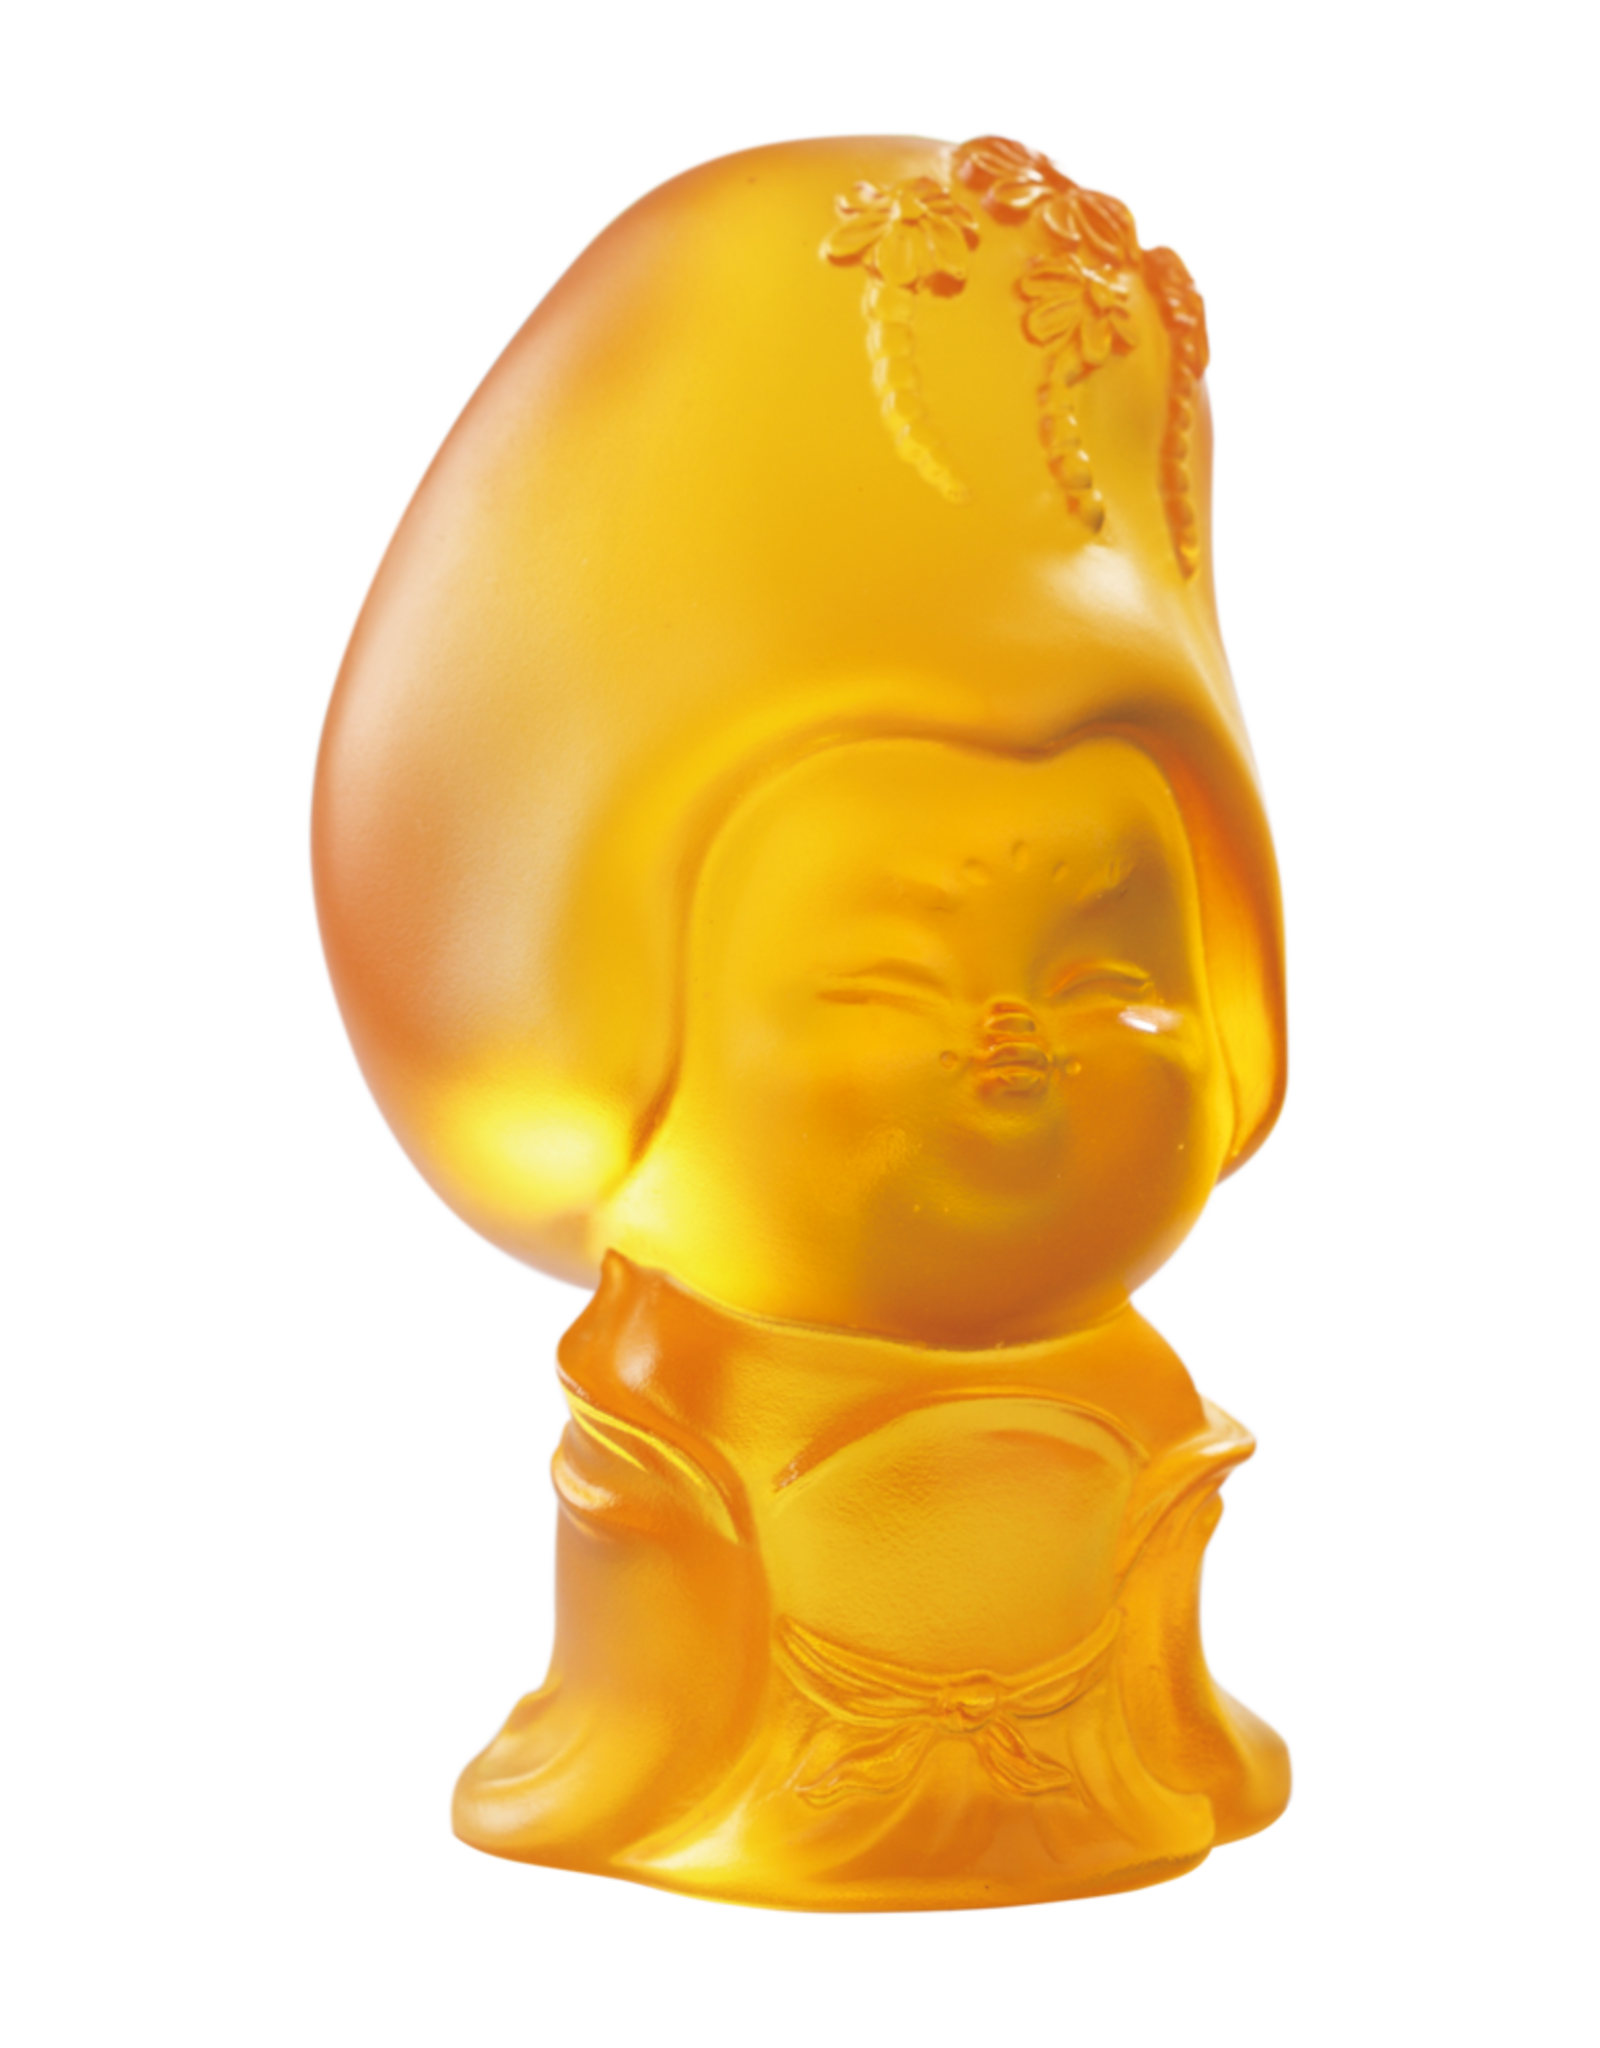 LIULI Crystal Art Crystal Mini Woman Figurine, The Beauty of Tang Dynasty-Thoughtful Beauty, Light Amber